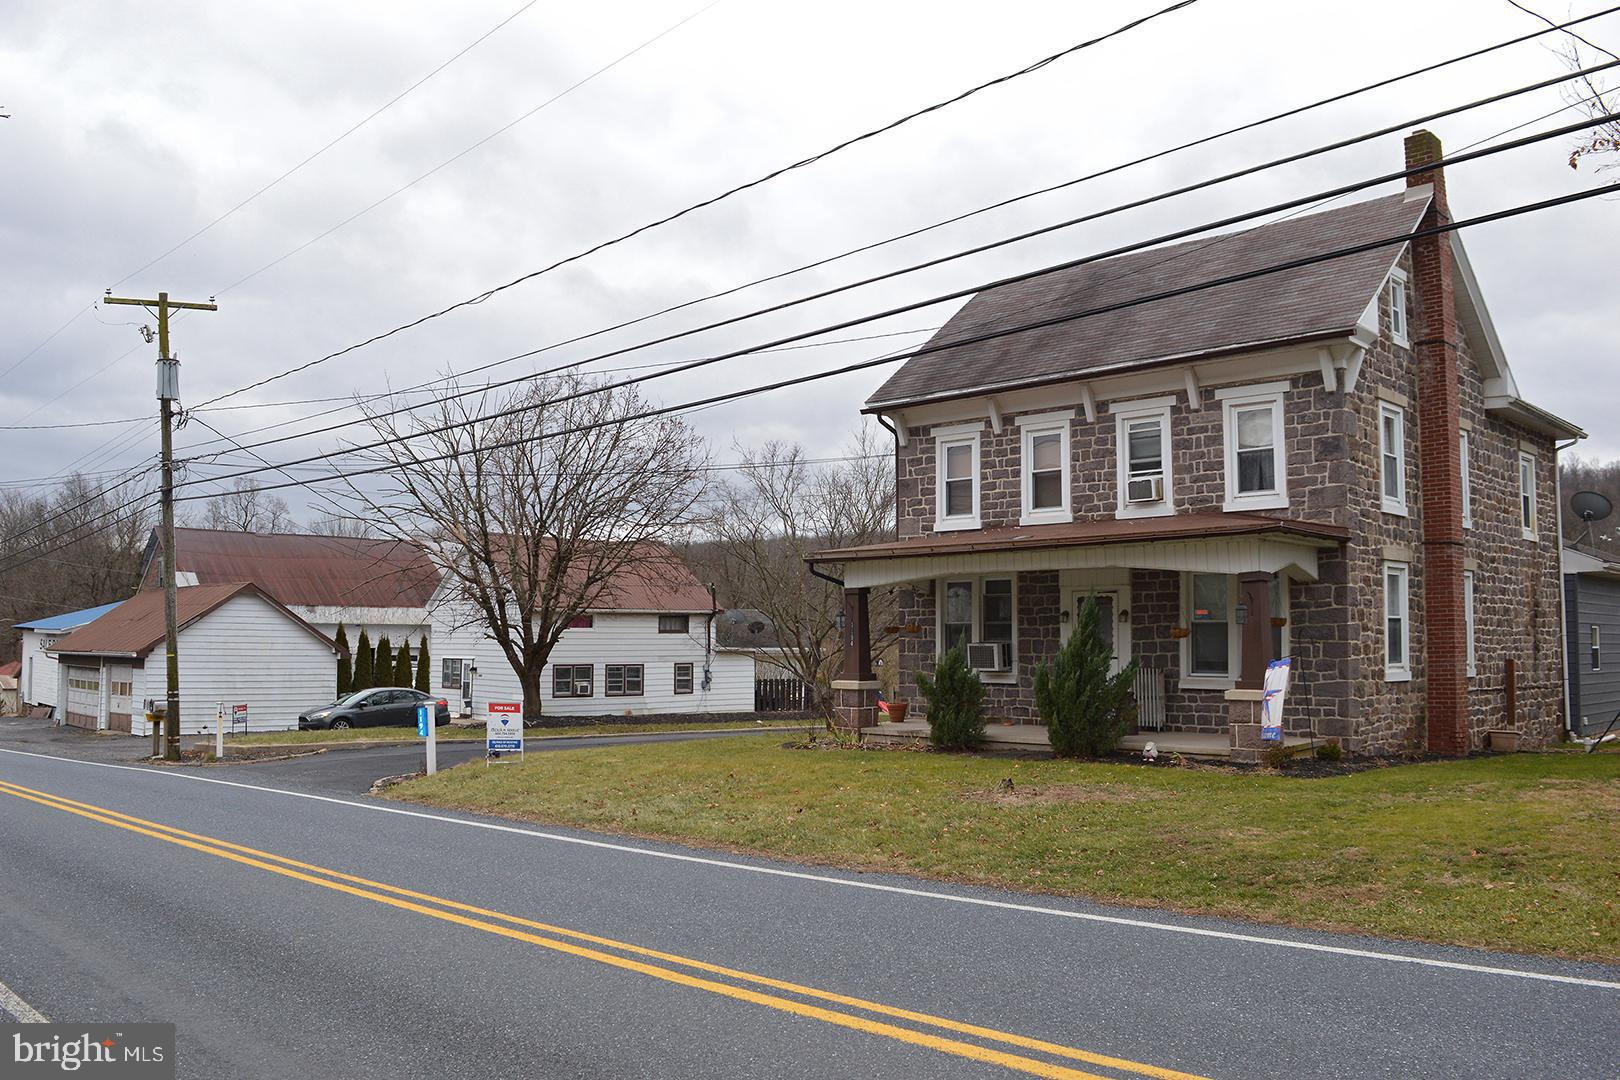 1192-1194 ALLEGHENYVILLE ROAD, MOHNTON, PA 19540